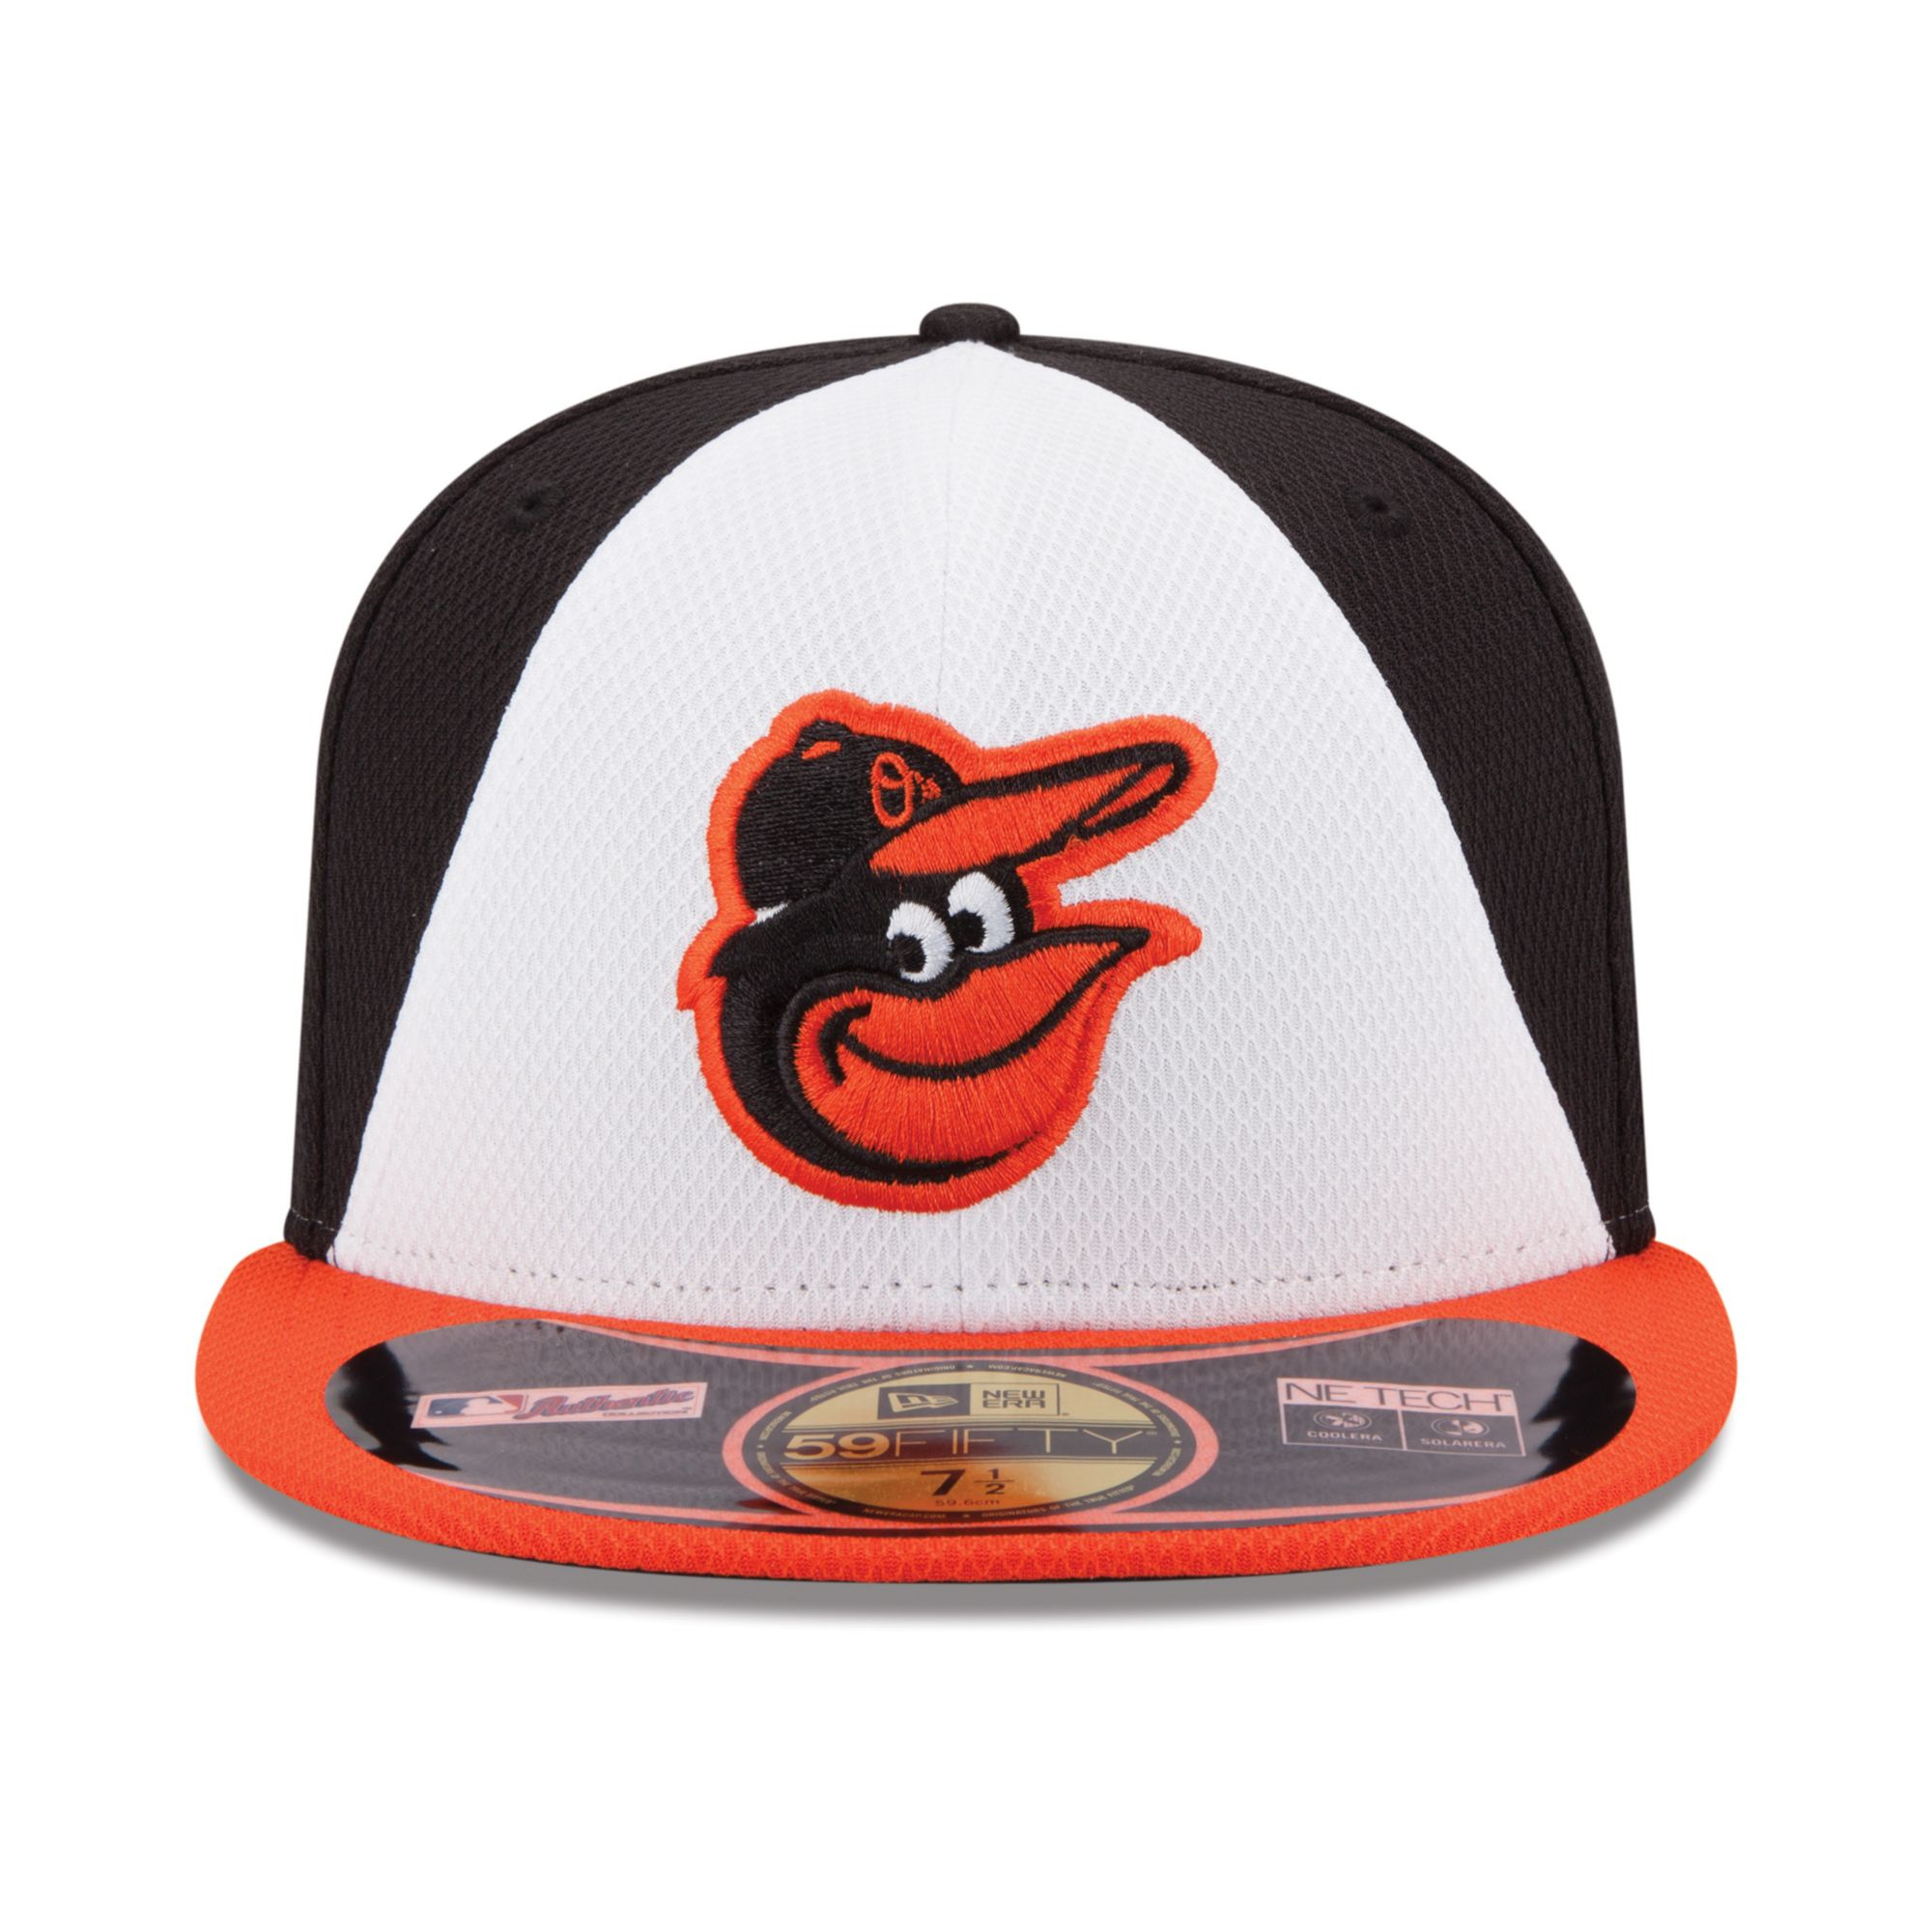 ... where to buy lyst ktz baltimore orioles all star game patch 59fifty cap  in 6b918 d66bd e678c9a9b06d